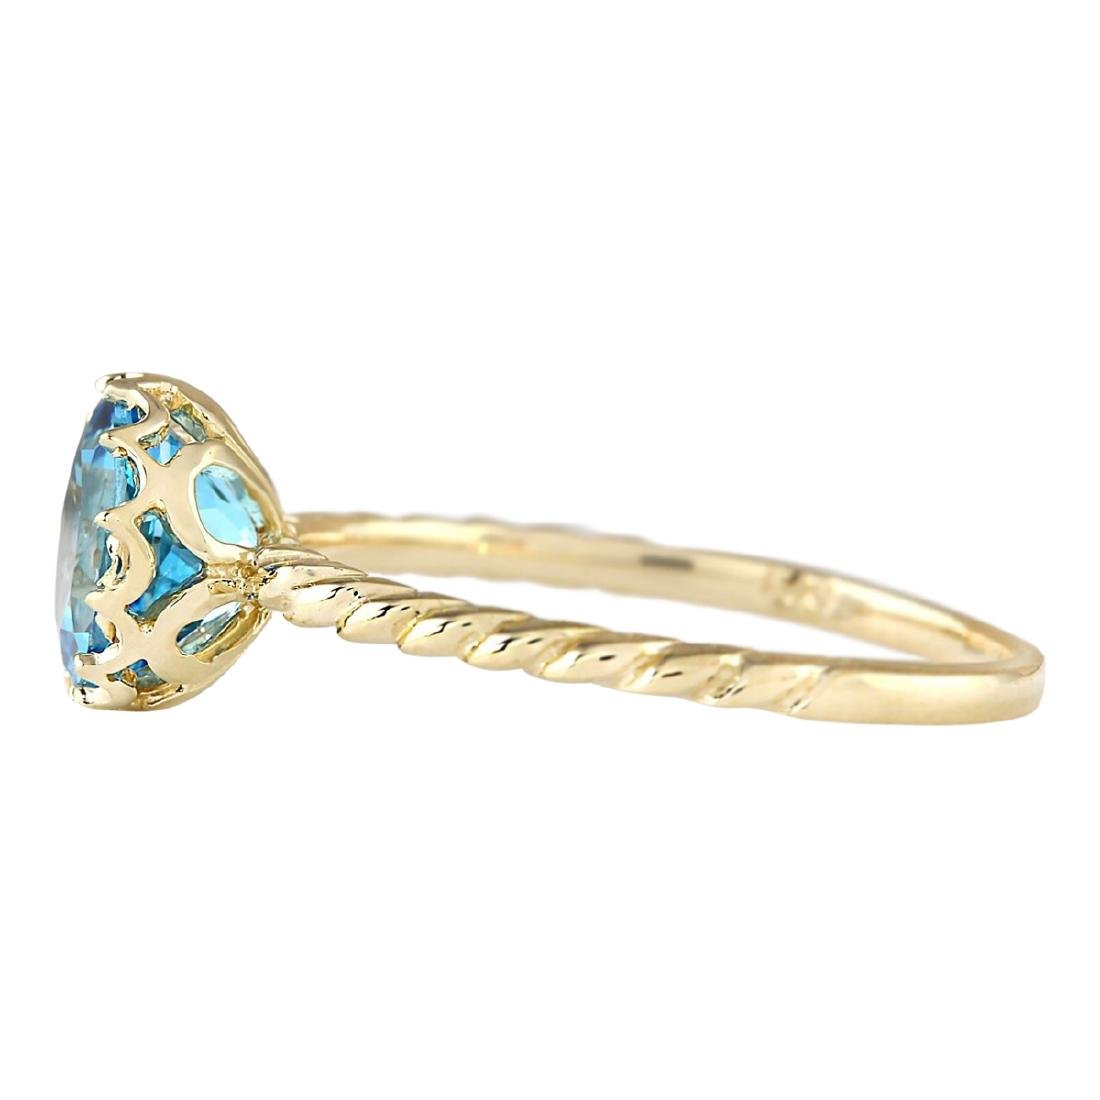 1.50 CTW Natural Blue Topaz Ring In 18K Yellow Gold - 2